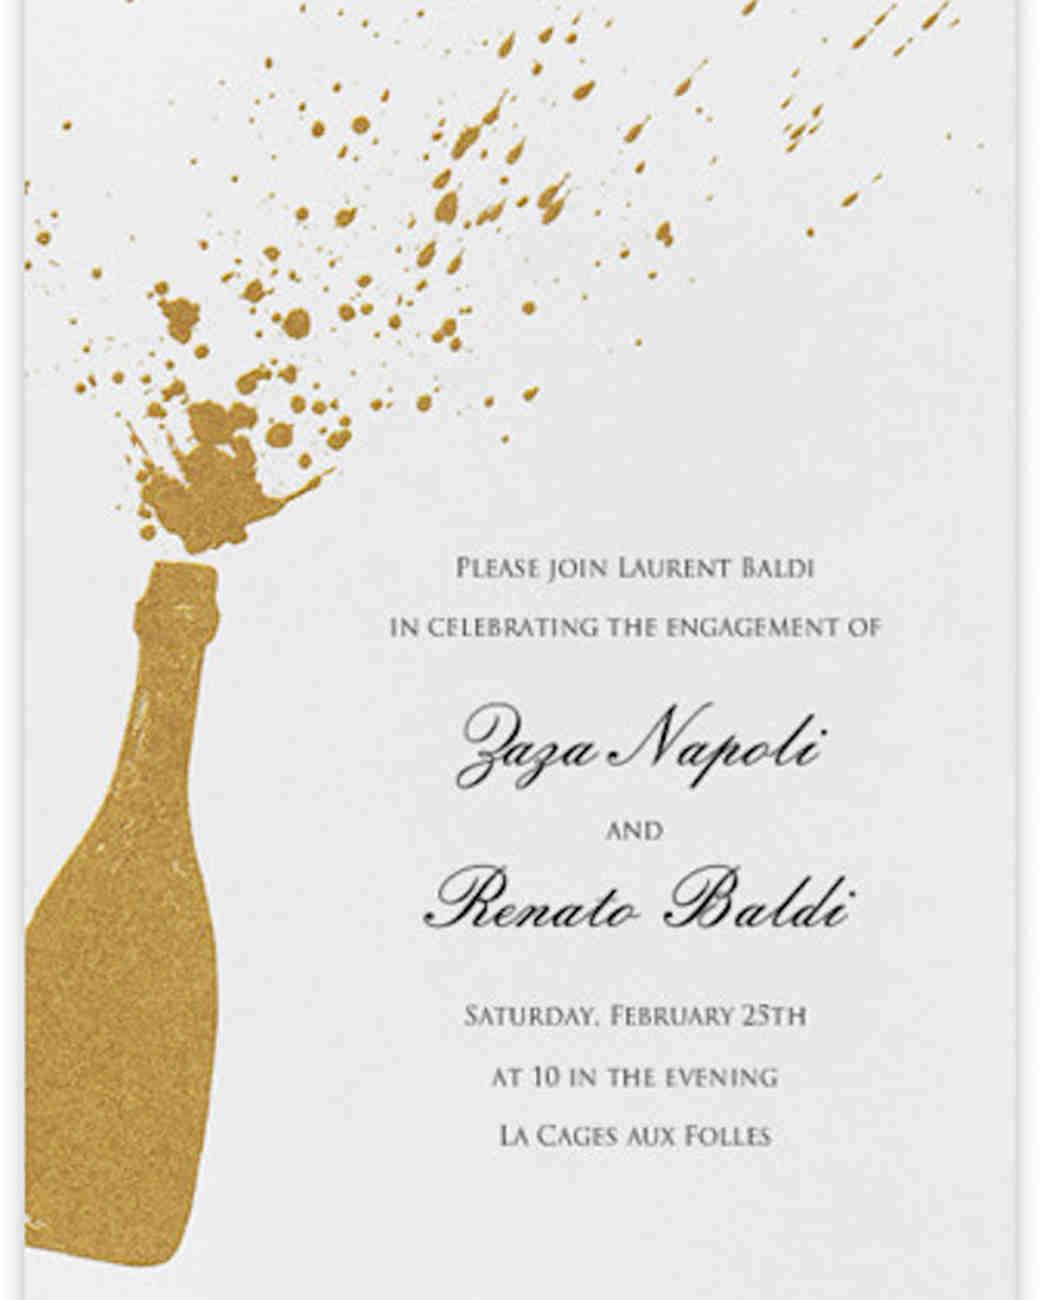 paperless-engagement-party-invitations-paperless-post-popping-champagne-0416.jpg